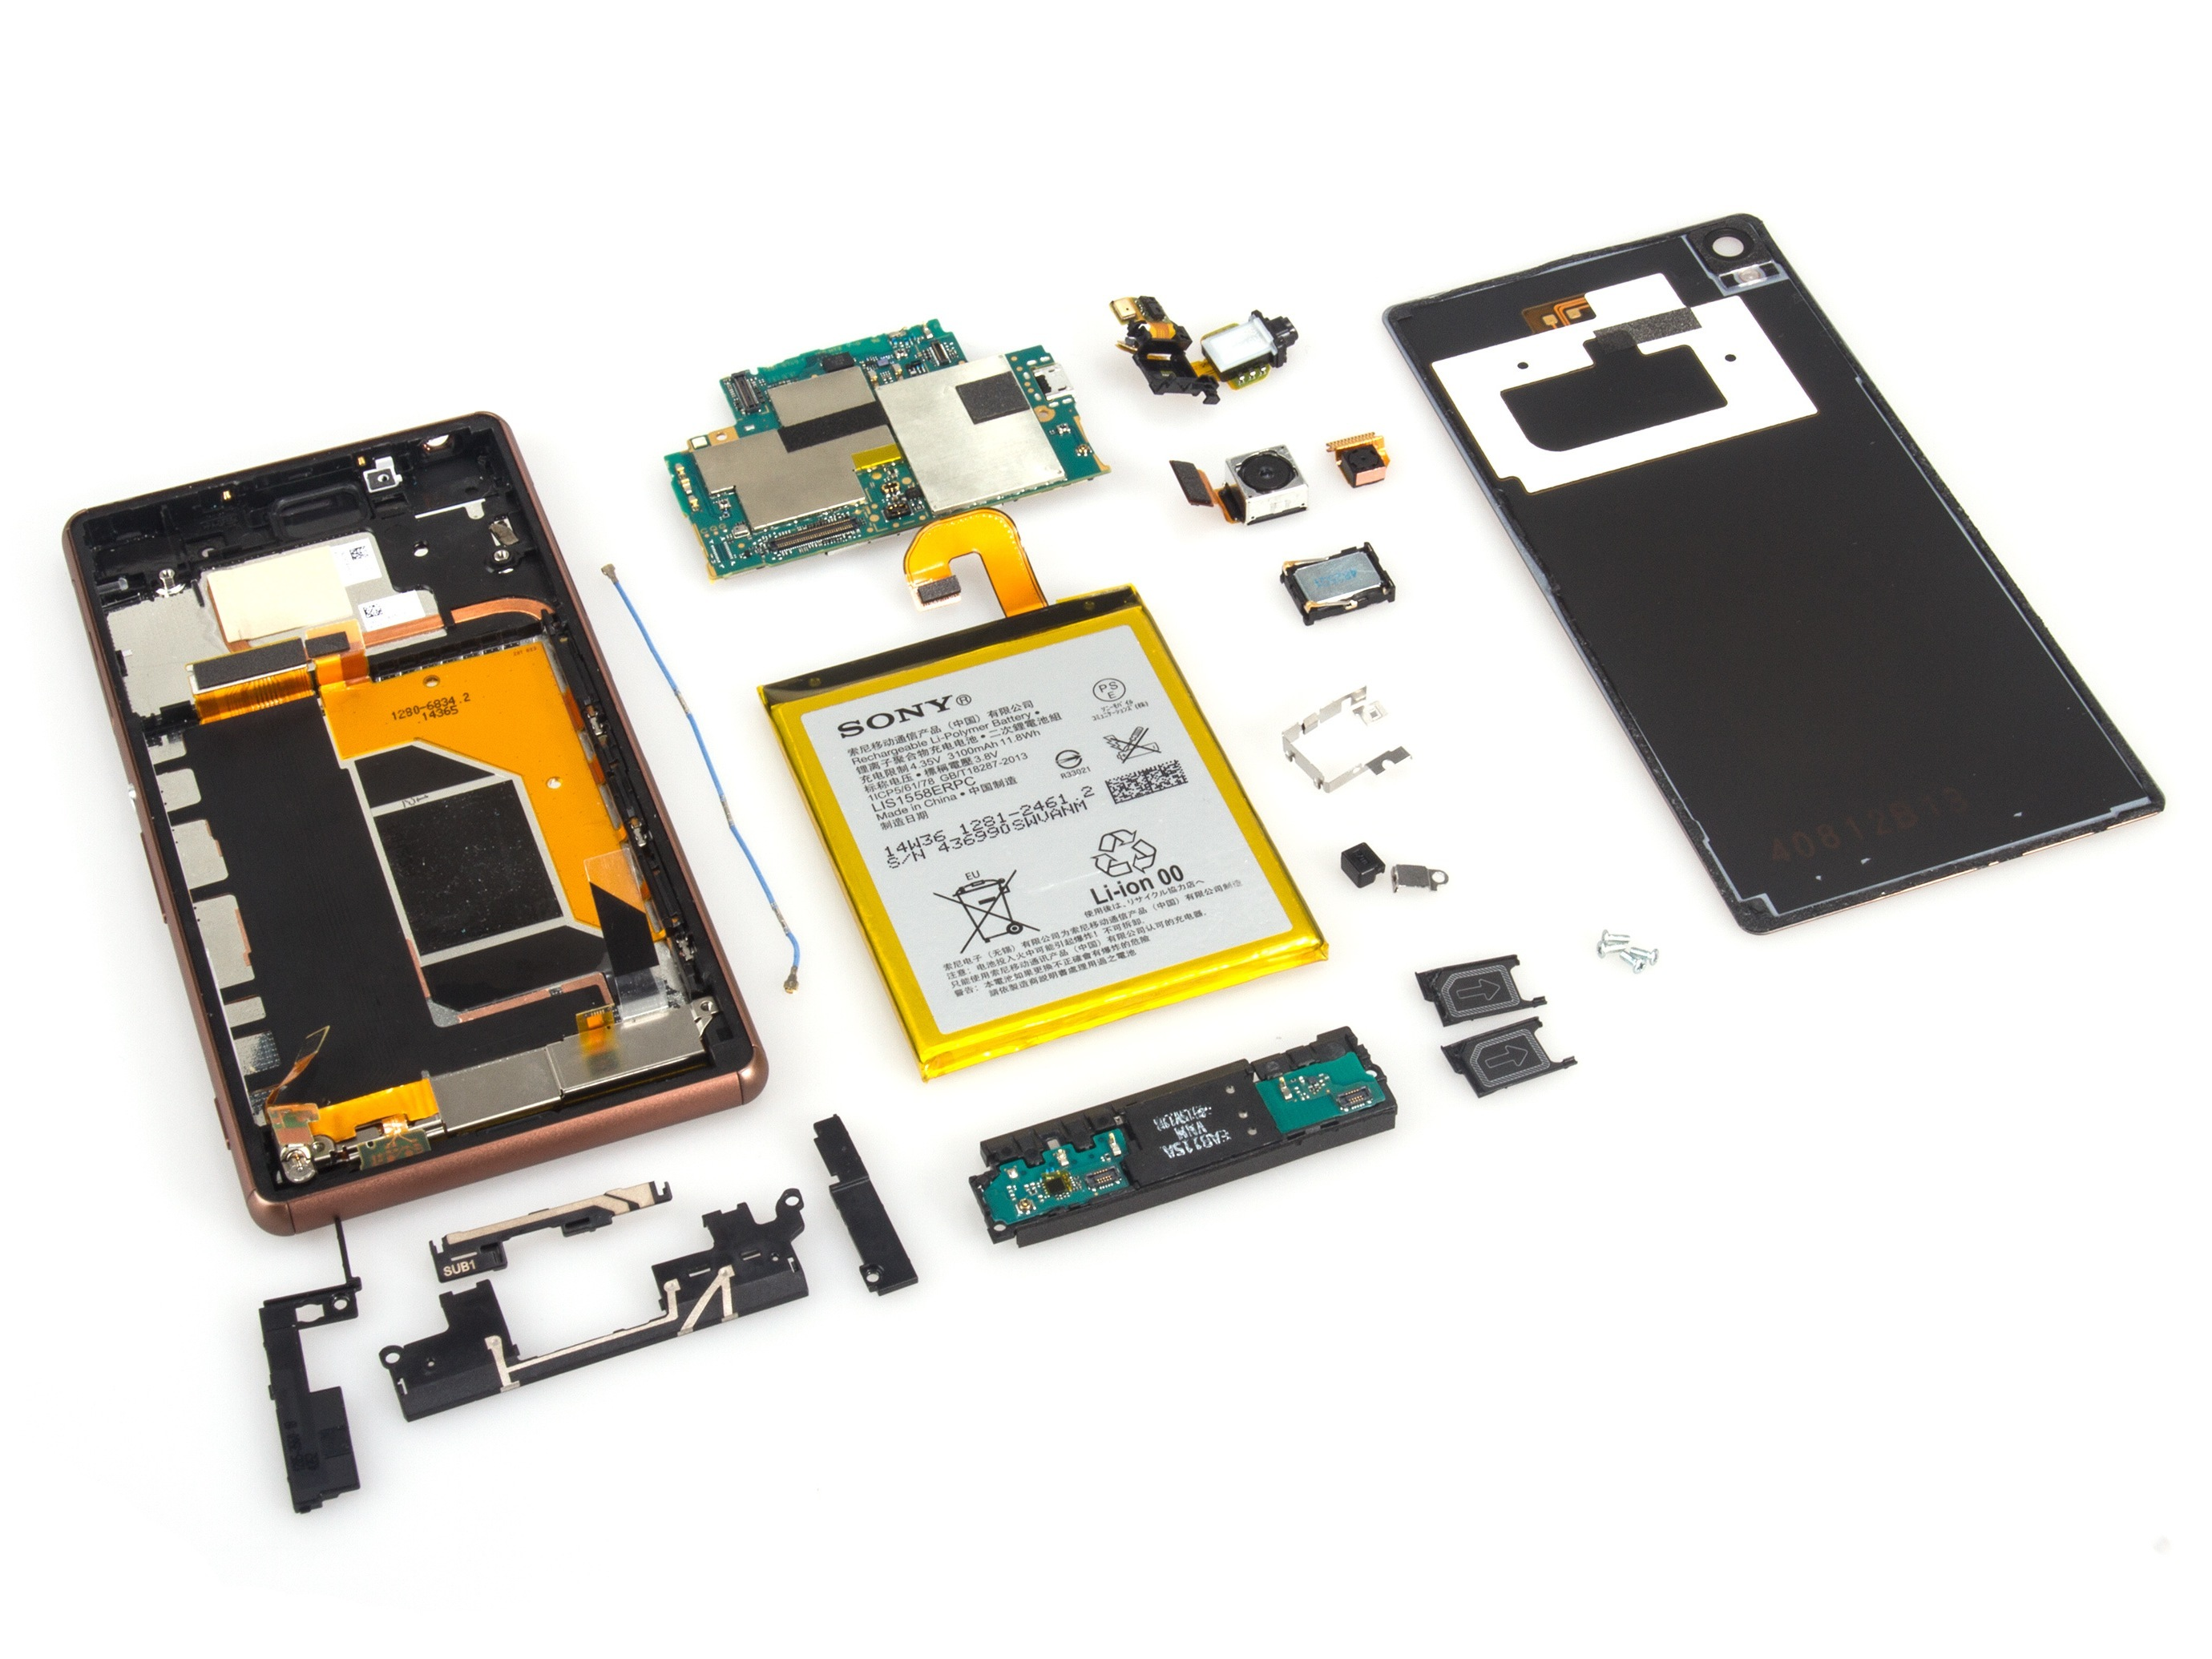 sony xperia c circuit diagram wiring library Sony Xperia C Circuit Diagram sony xperia m circuit diagram wiring